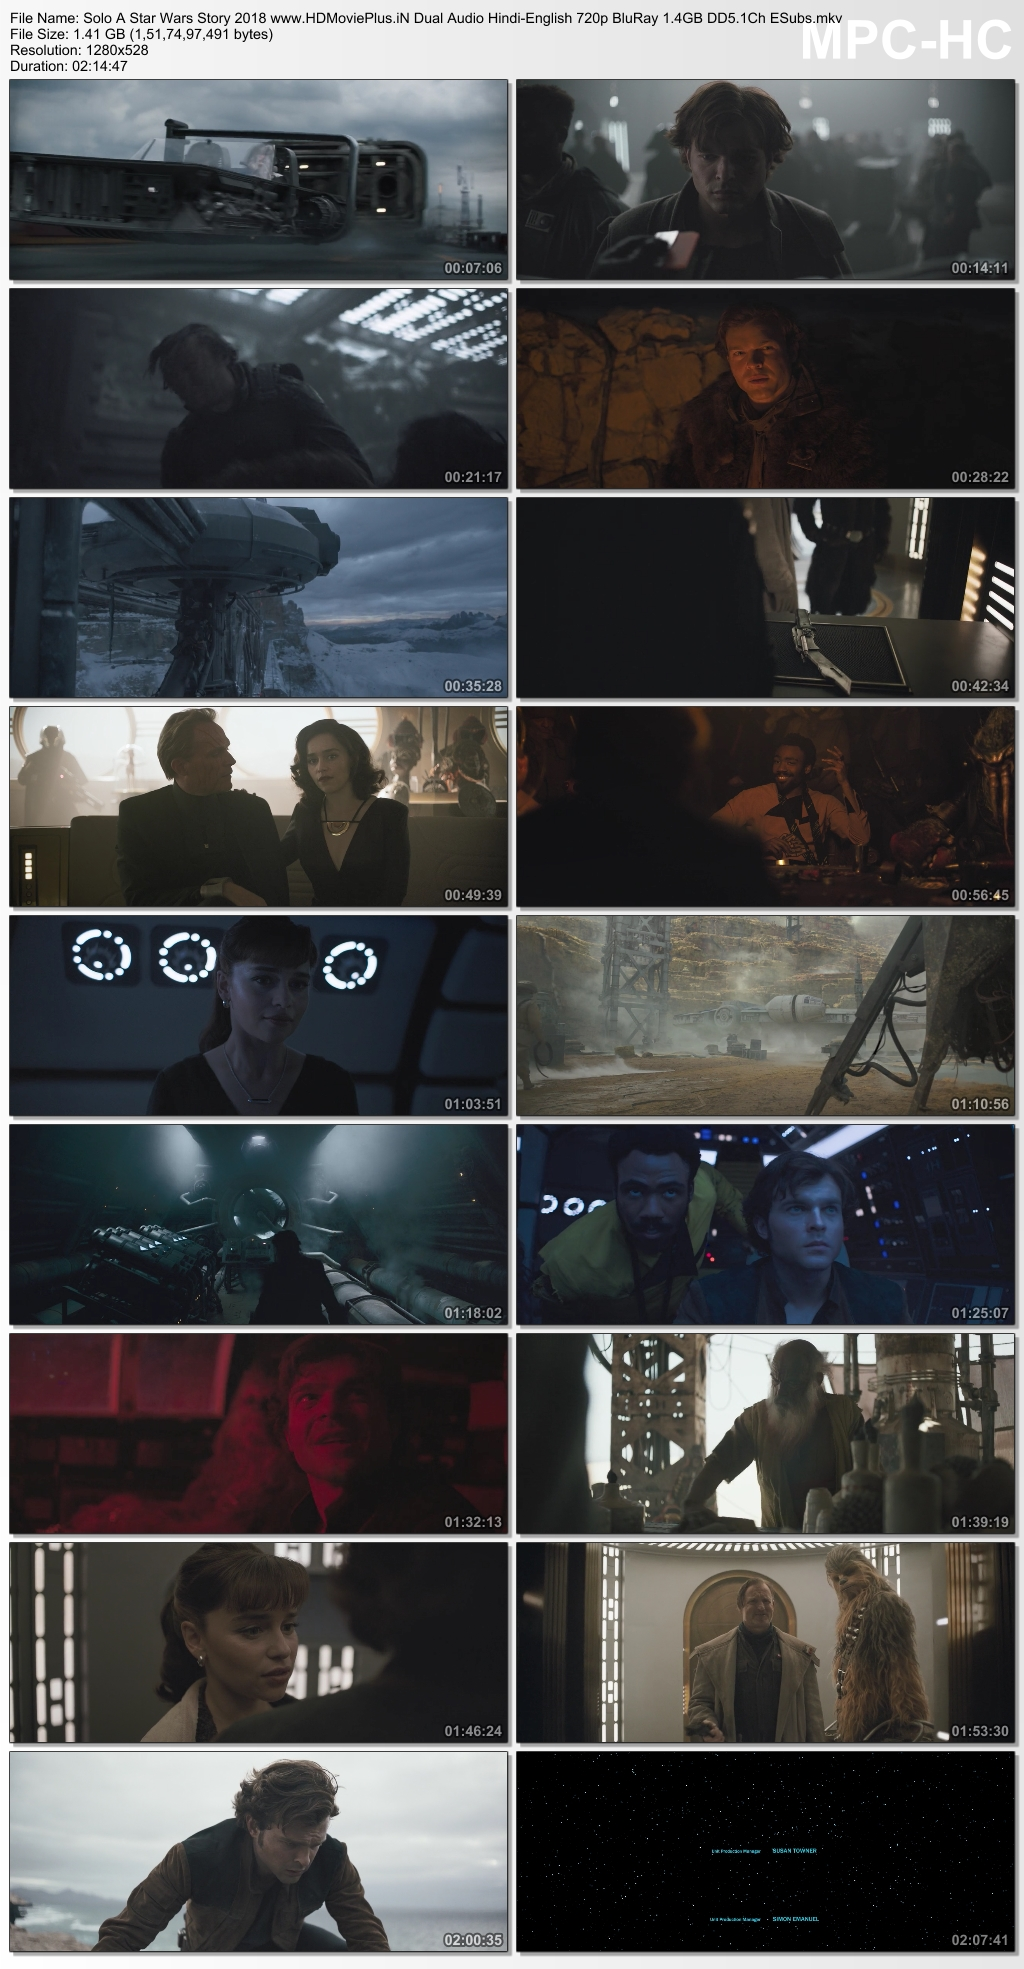 Solo: A Star Wars Story 2018 Dual Audio